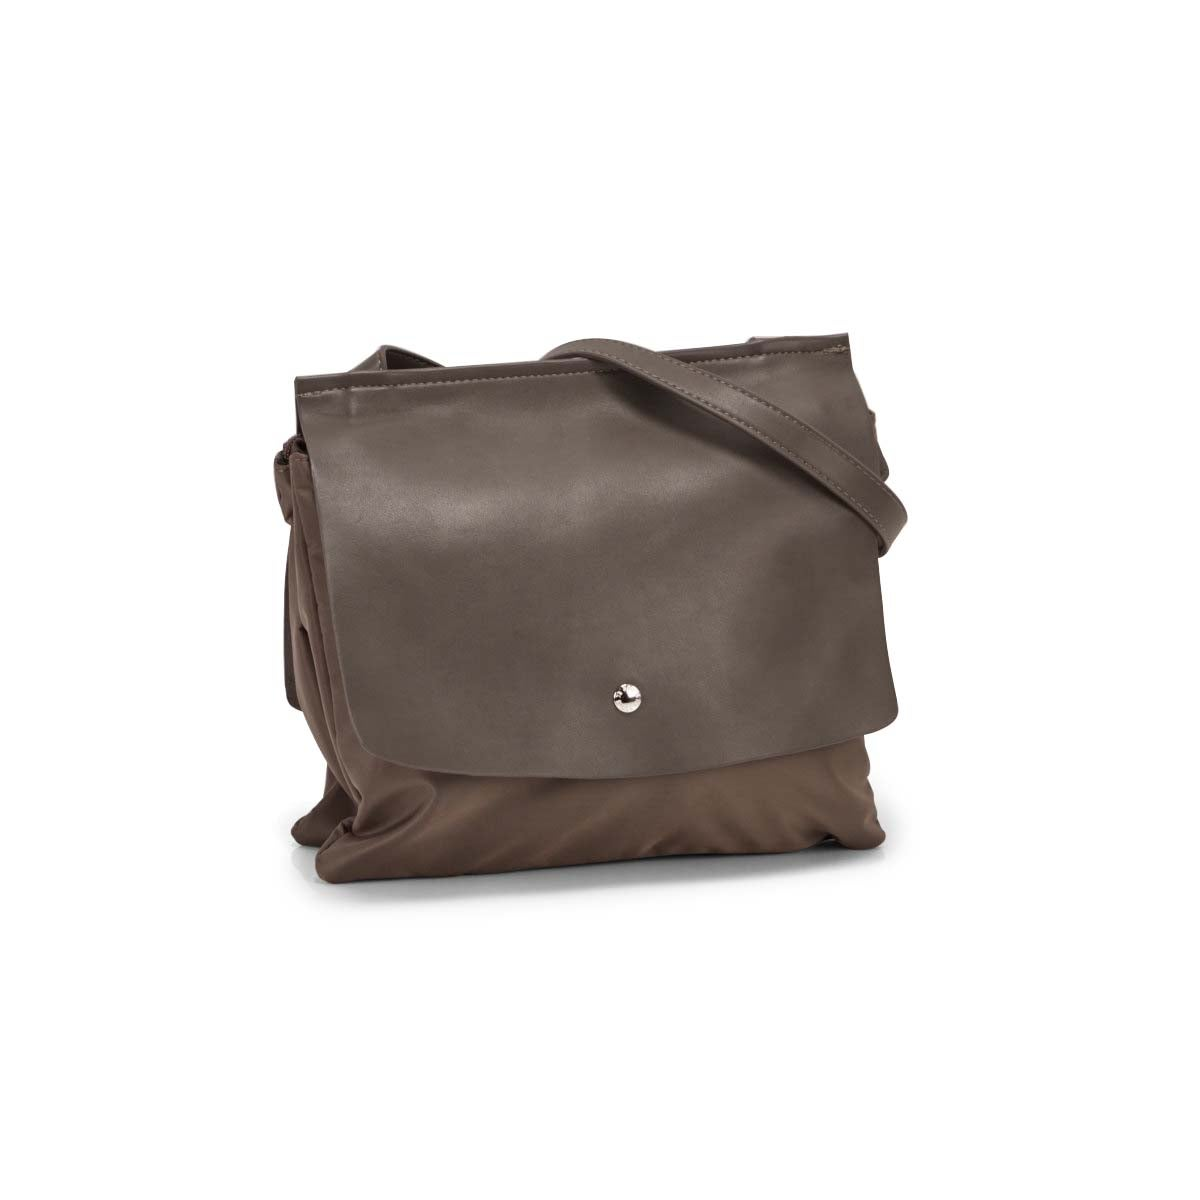 Lds Roots73 gry double flap shoulder bag